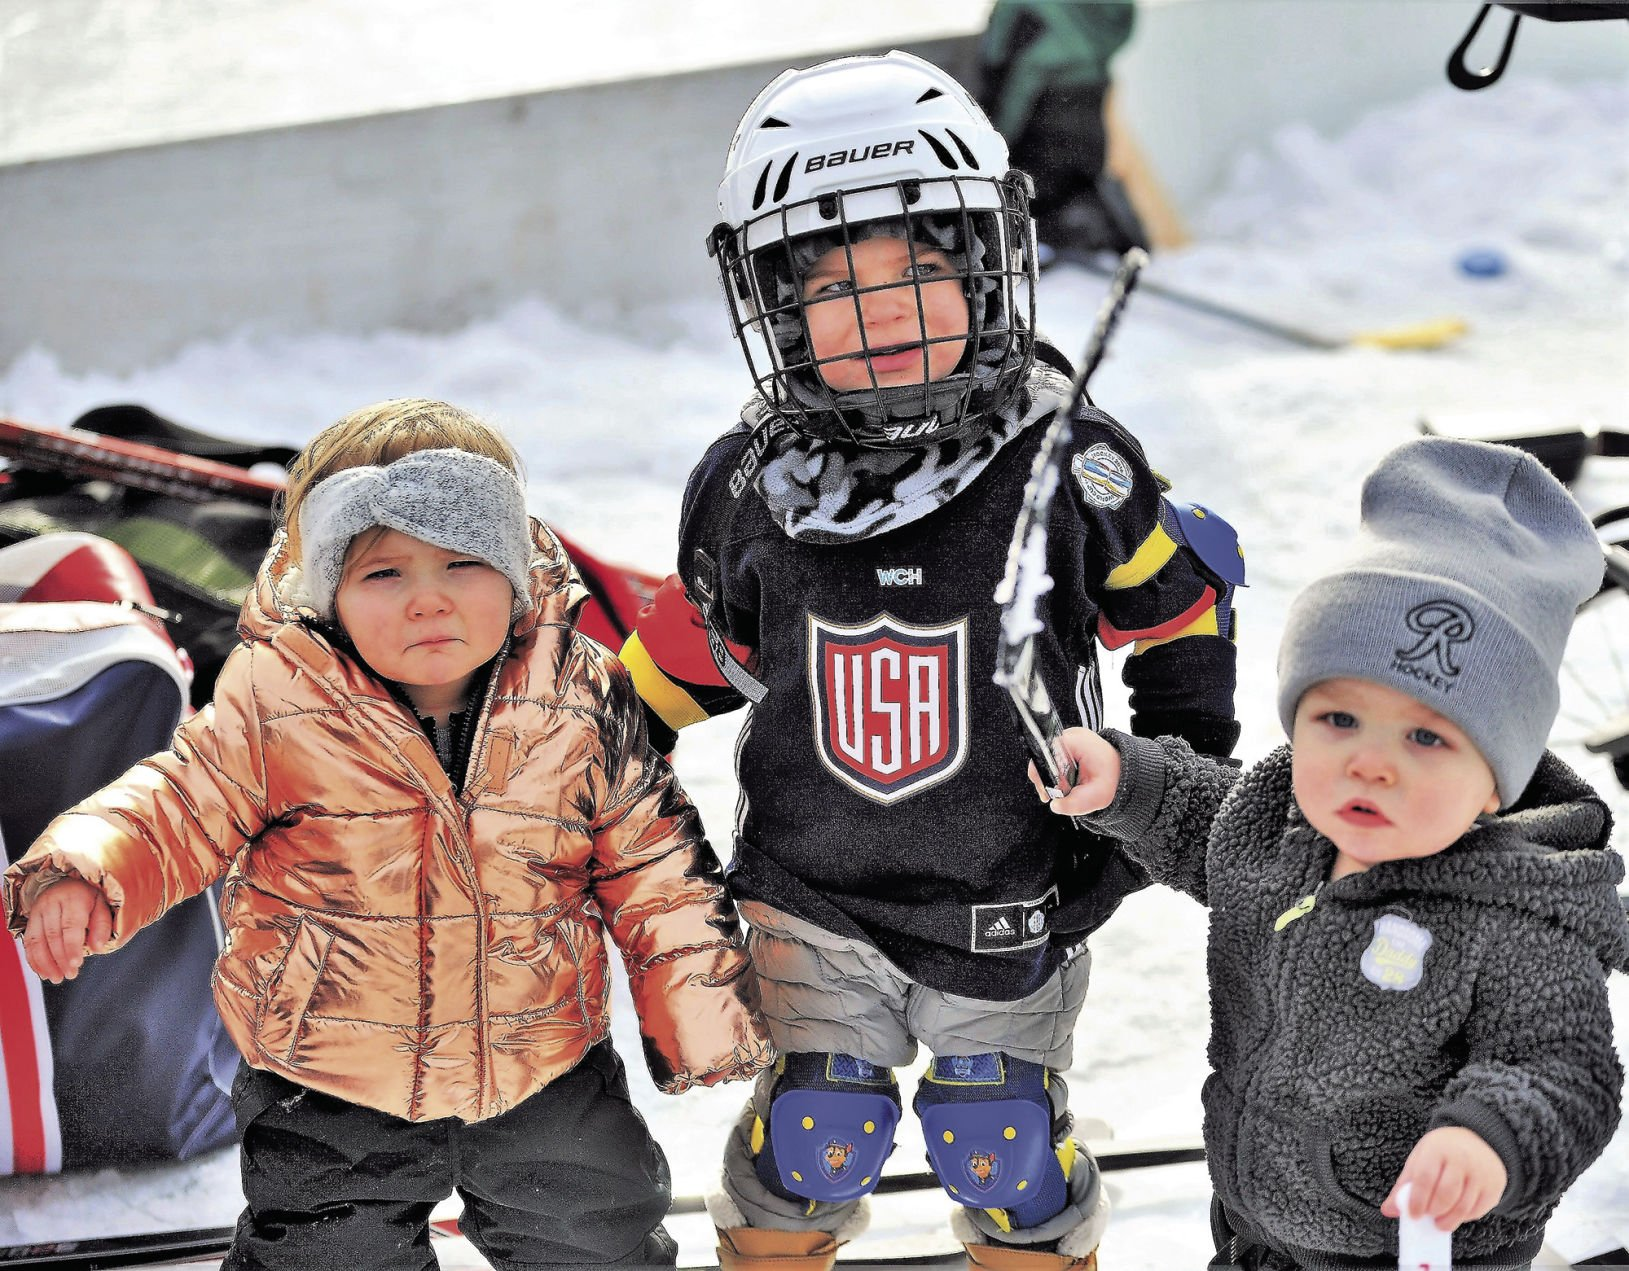 Five Hockey Champions Are Crowned In Excelsior, MN's American Pond Hockey Championships